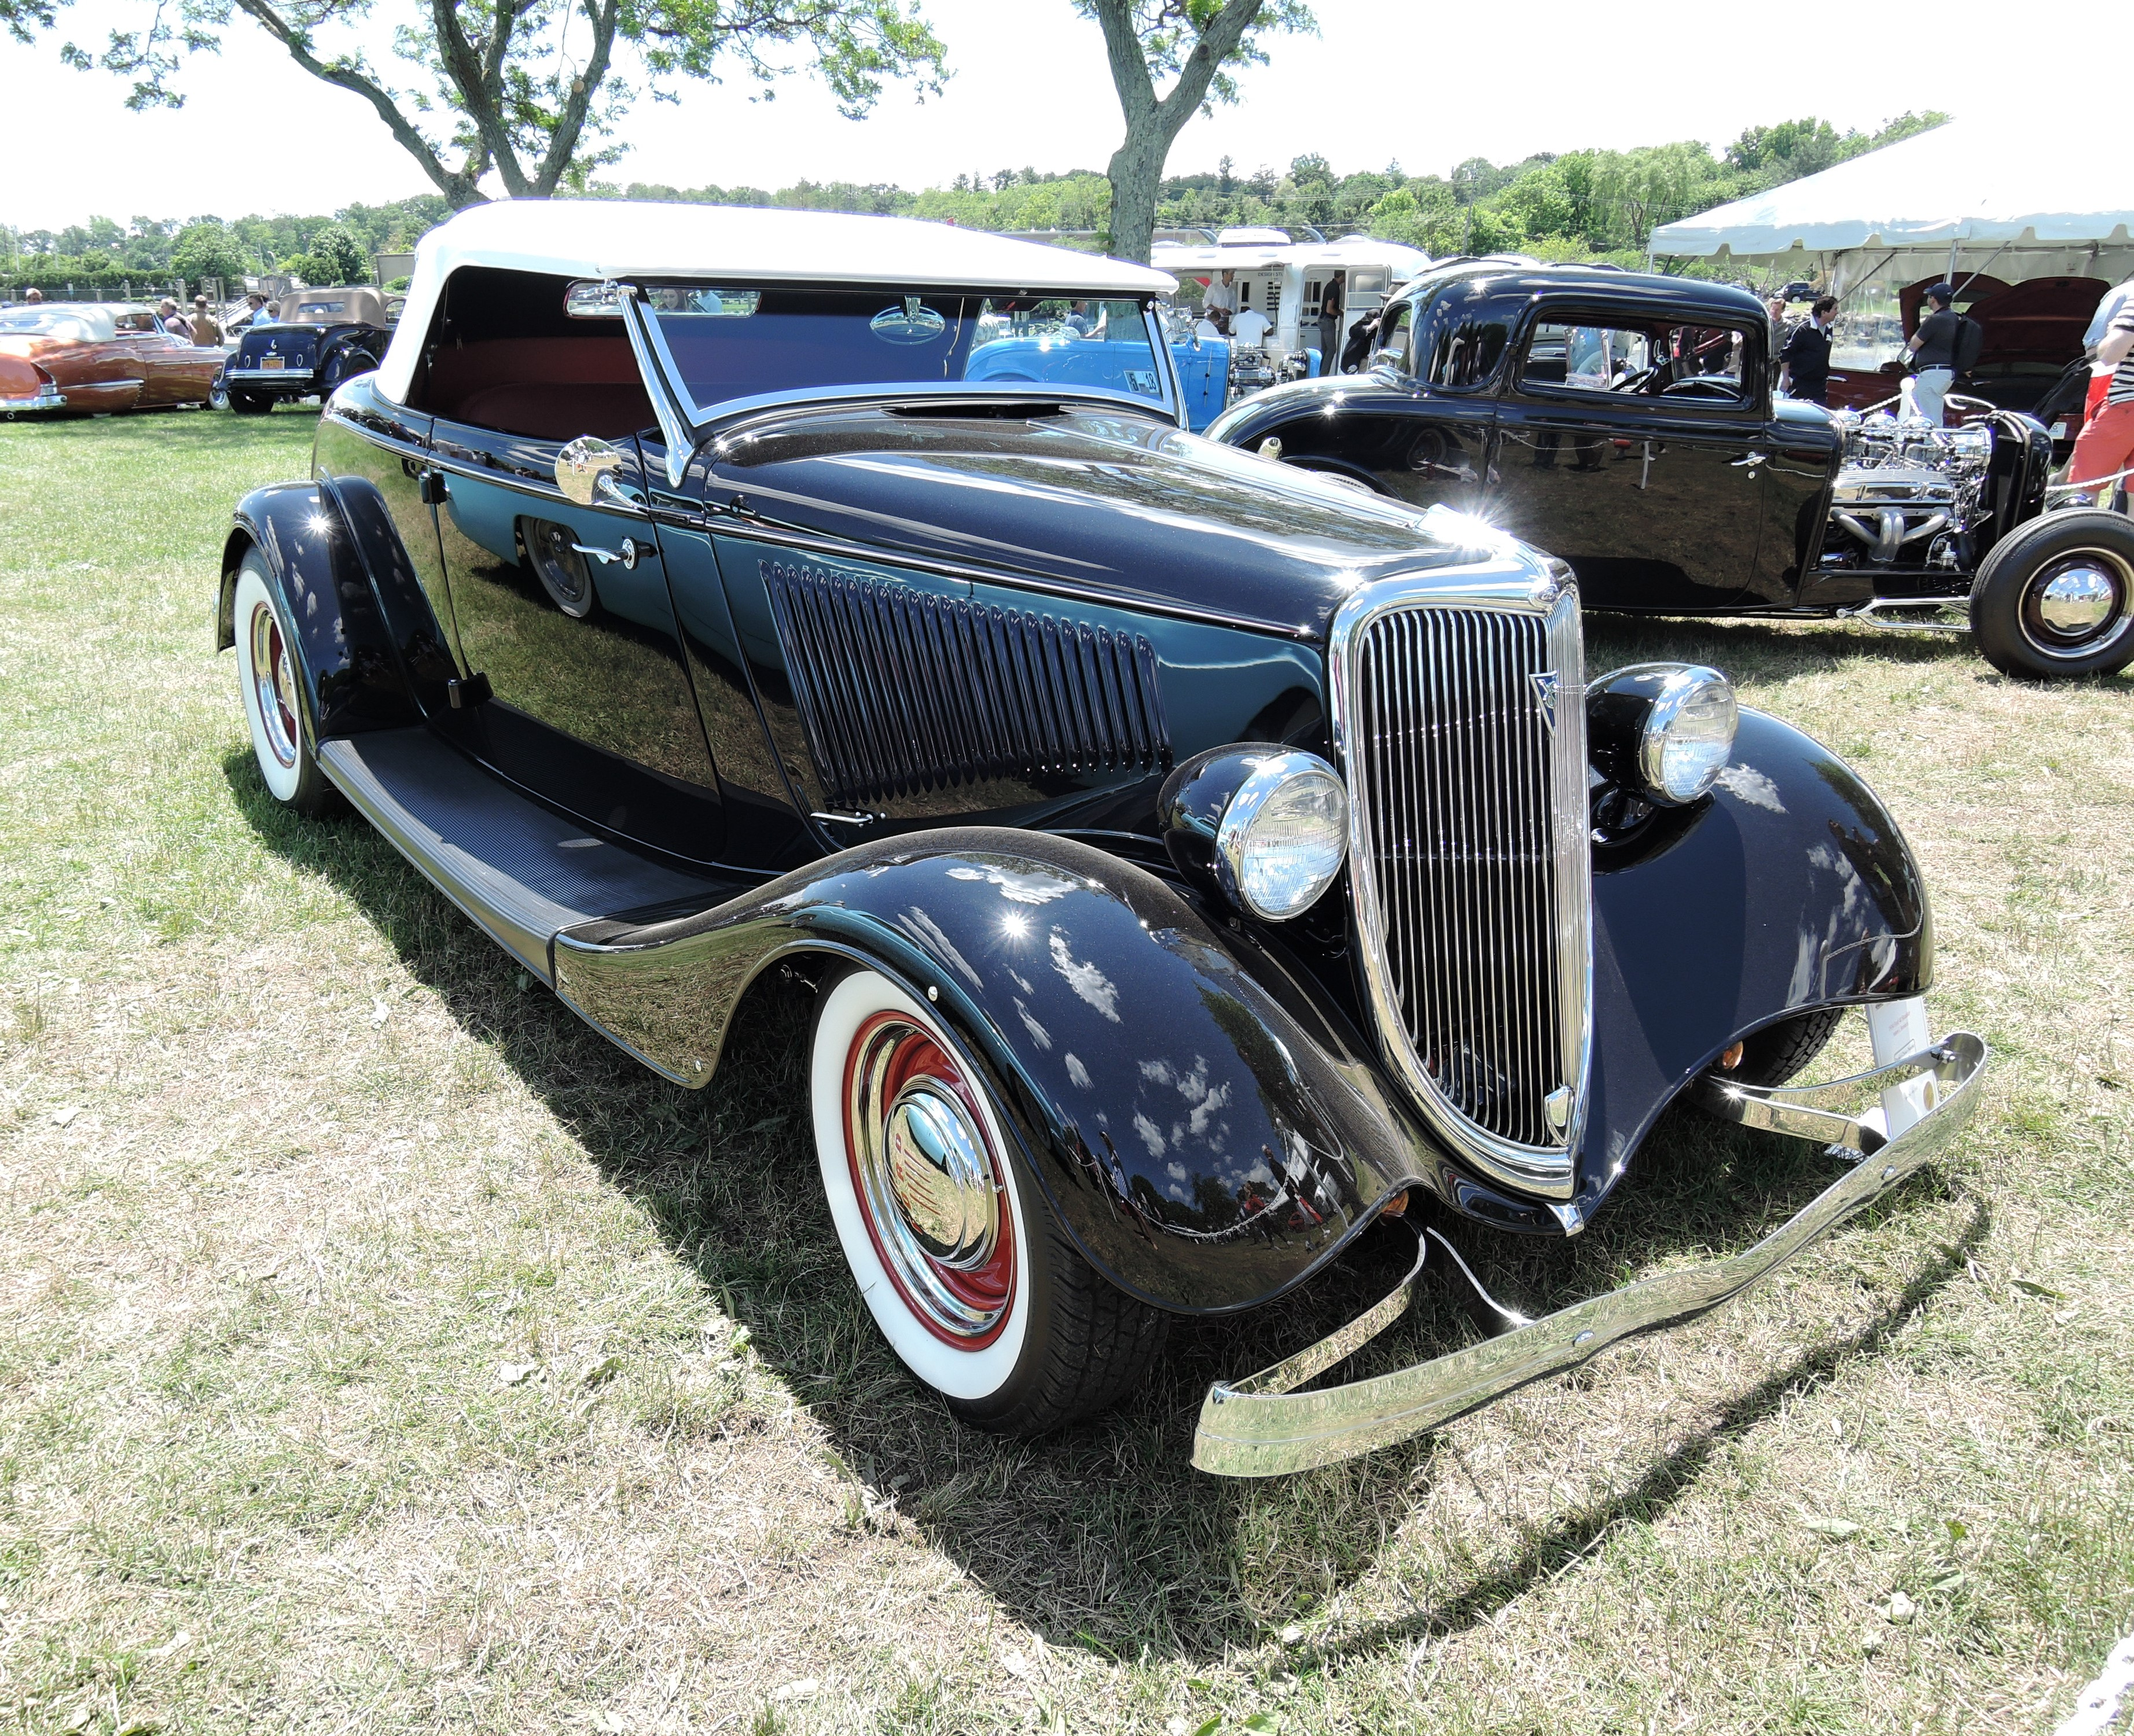 blue 1934 Ford 40 Roadster - Greenwich Concours d'Elegance 2017